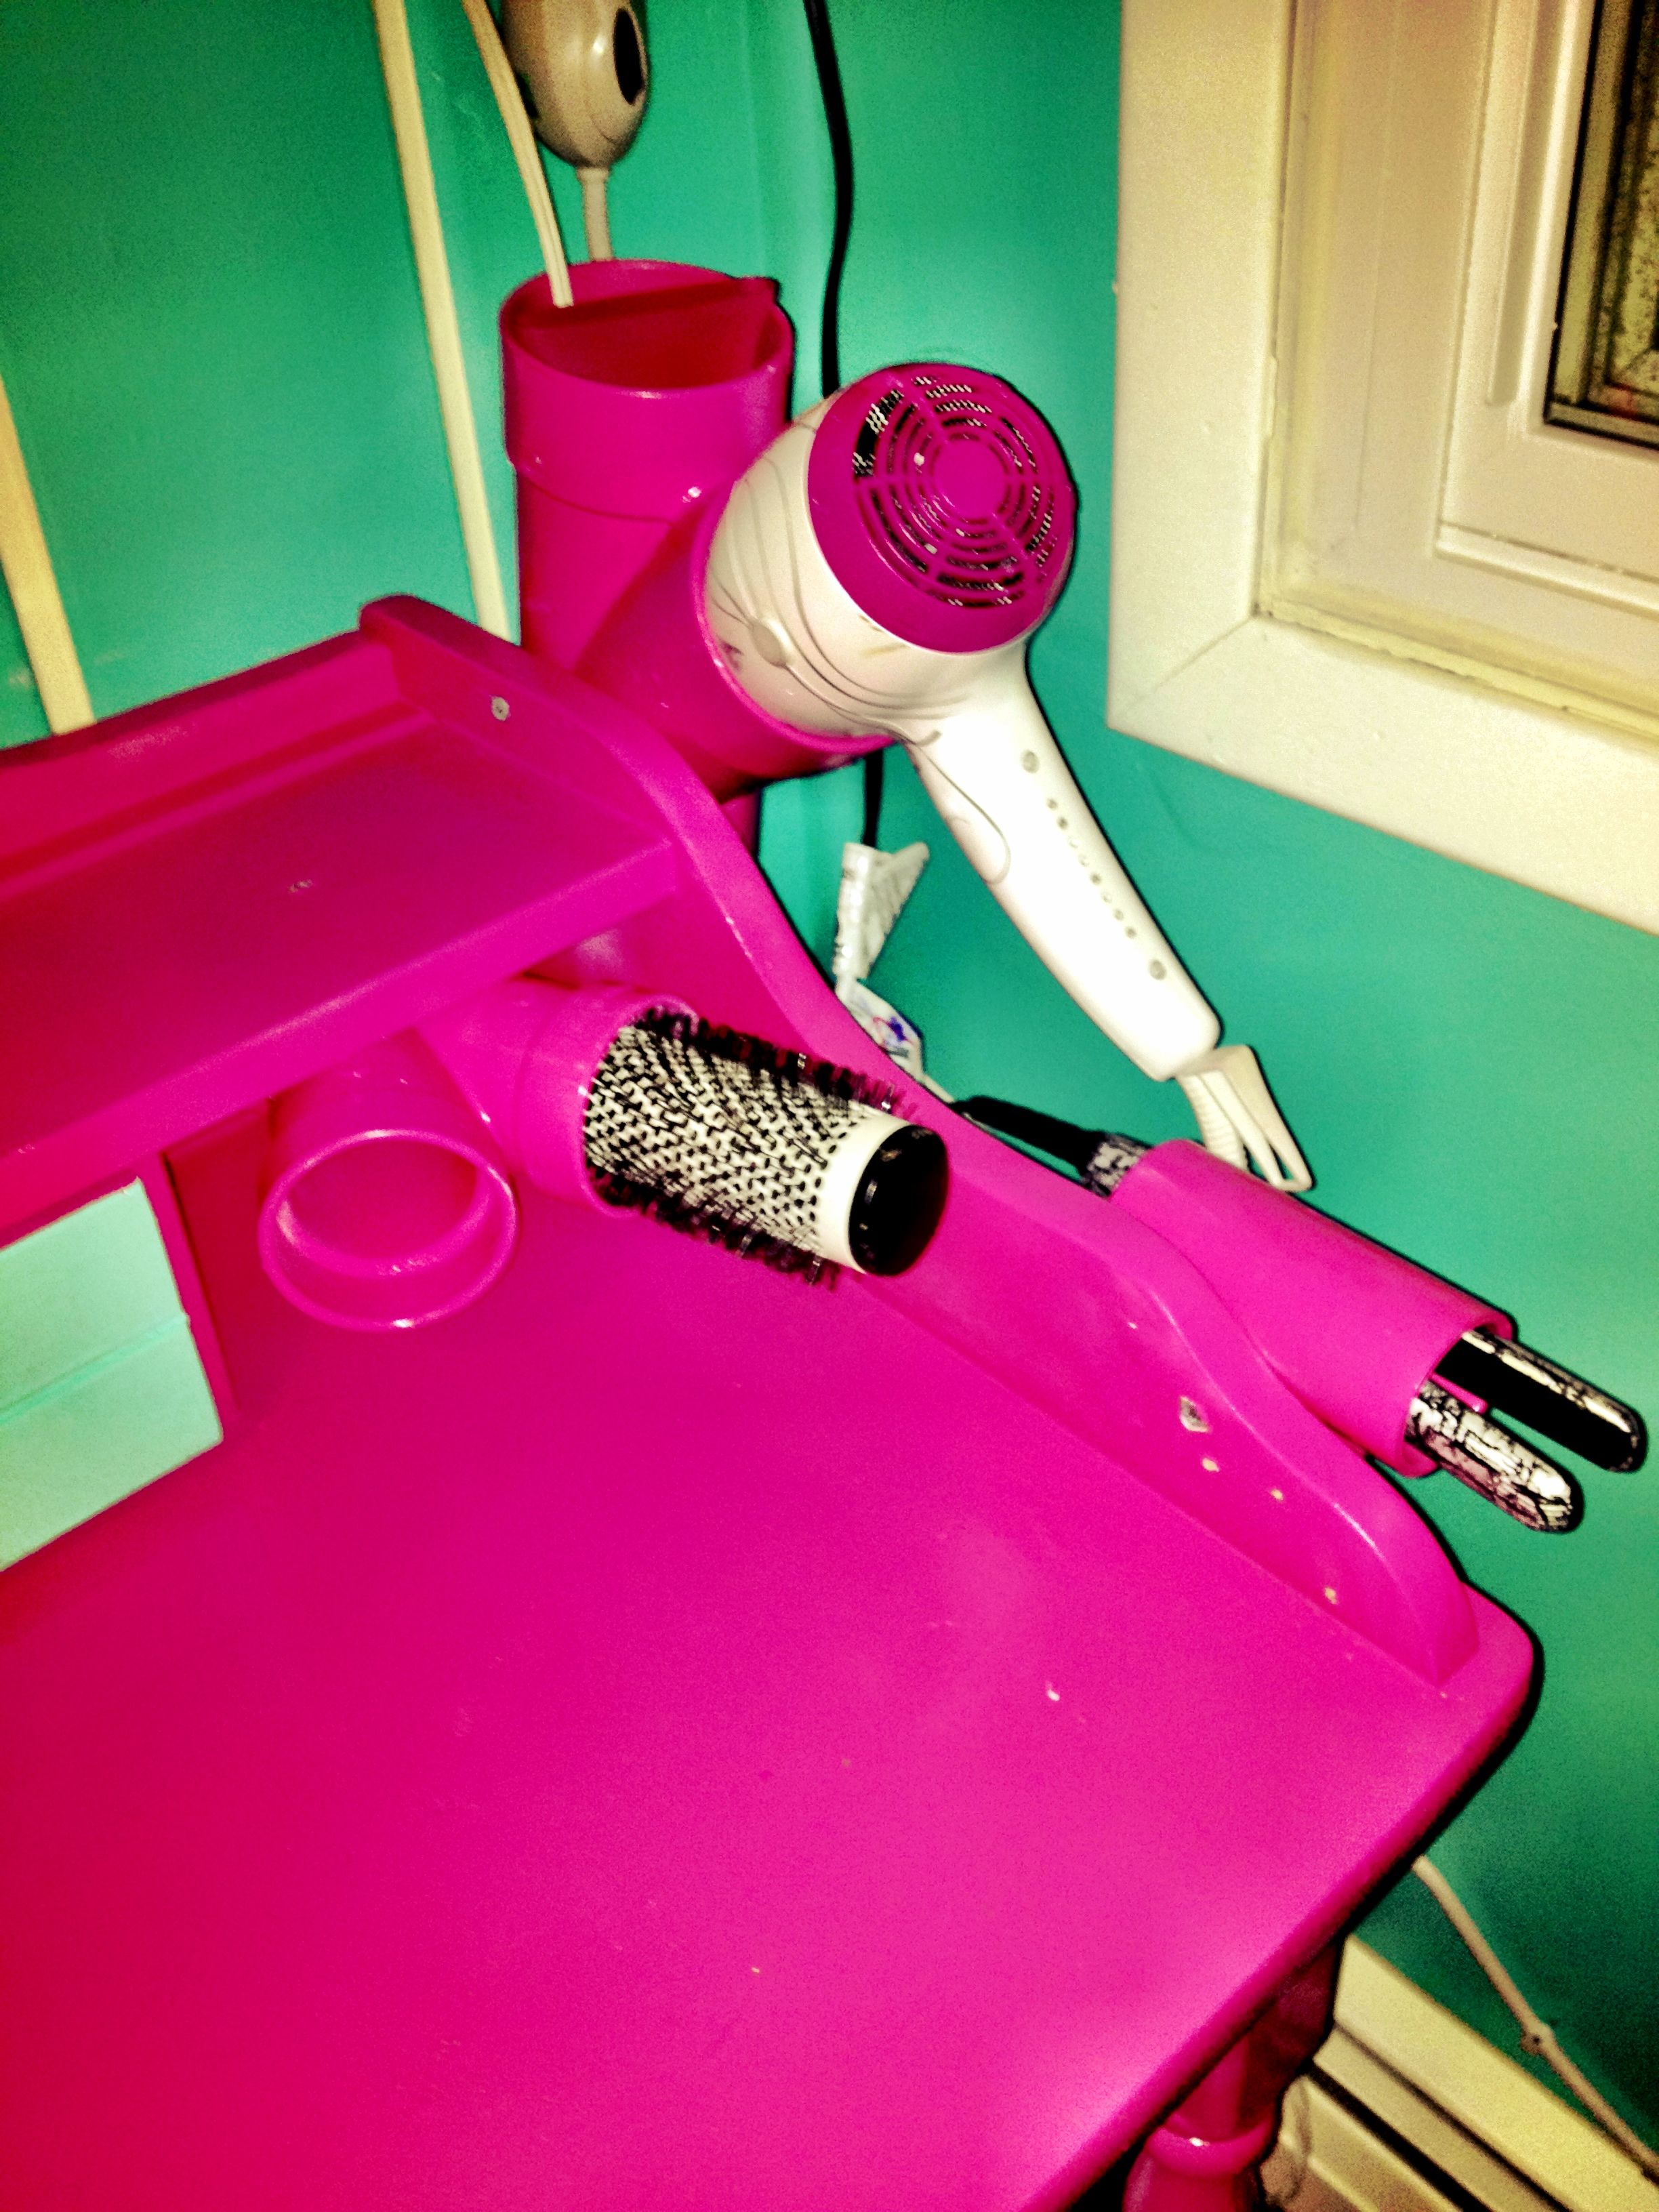 I used 3 PVC pipes from Home Depot for like less than a dollar a pice, spray painted them and screwed them to an antique desk to use as my home salon station:D